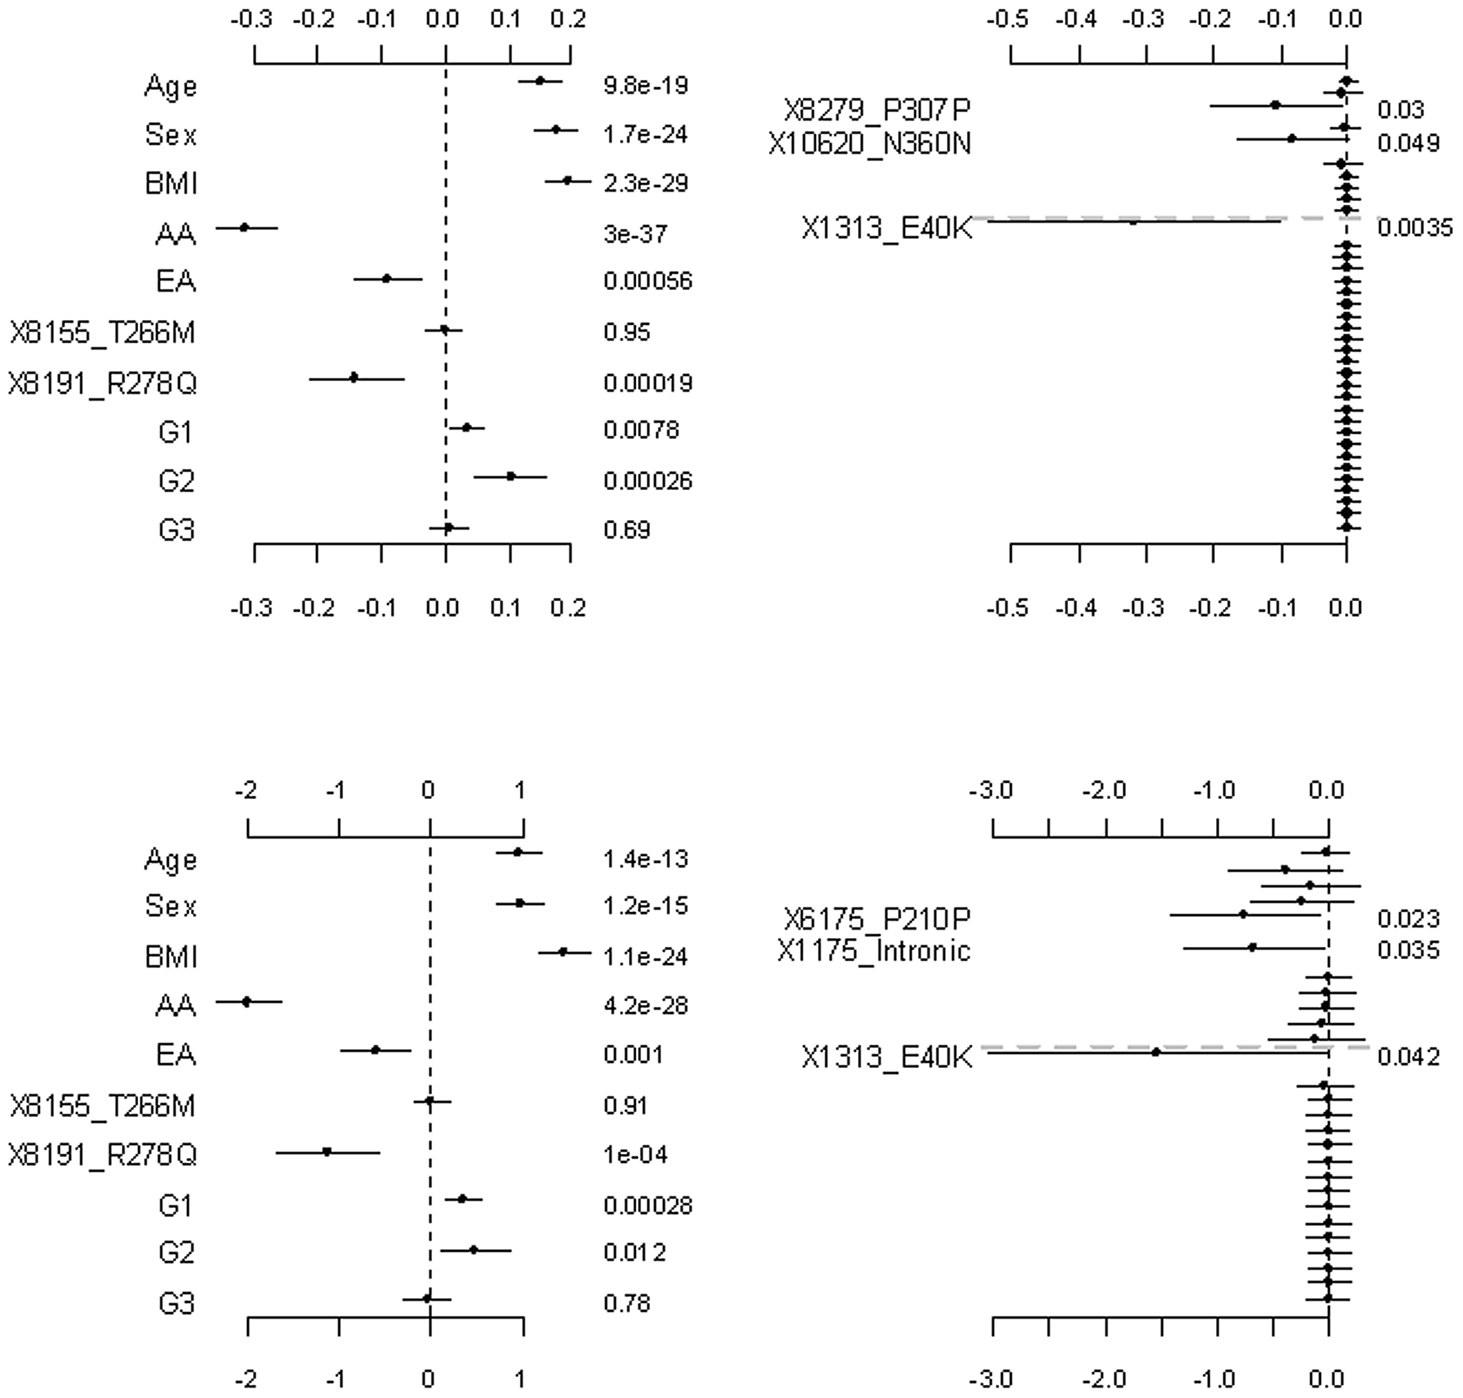 Analyses of the proposed hierarchical GLMs with prior means <i>μ<sub>j</sub></i> being the functional probabilities for the rare non-synonymous variants.